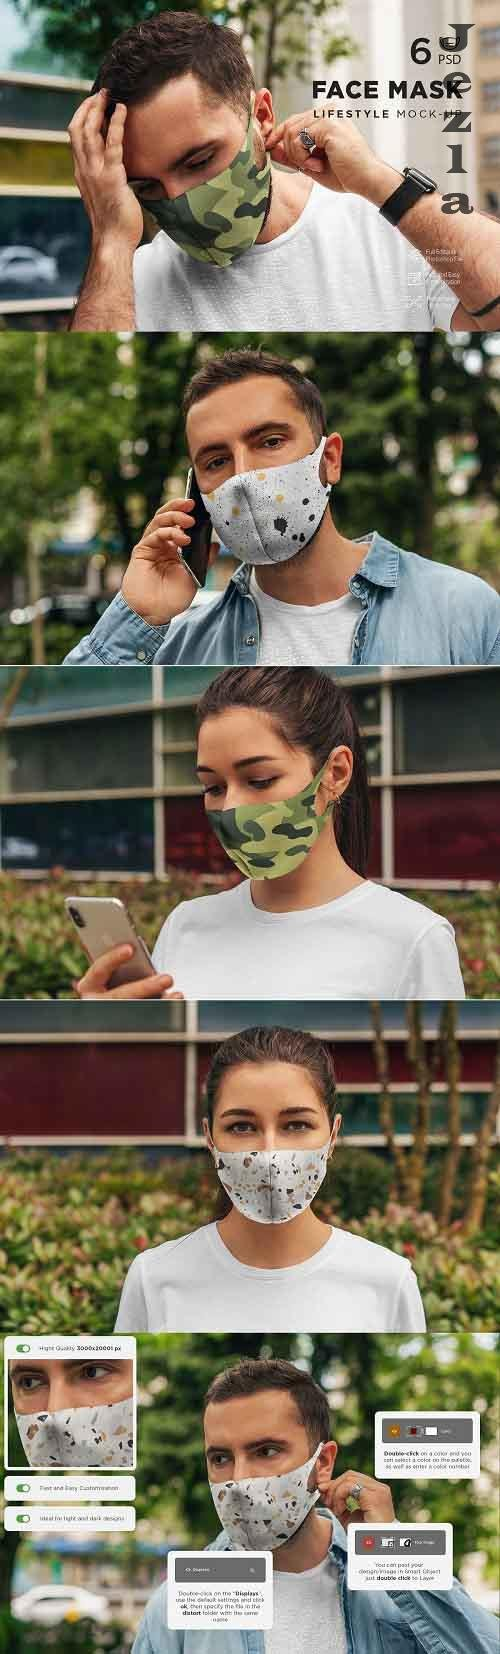 CreativeMarket - Face Mask MockUp Lifestyle 2 5012168